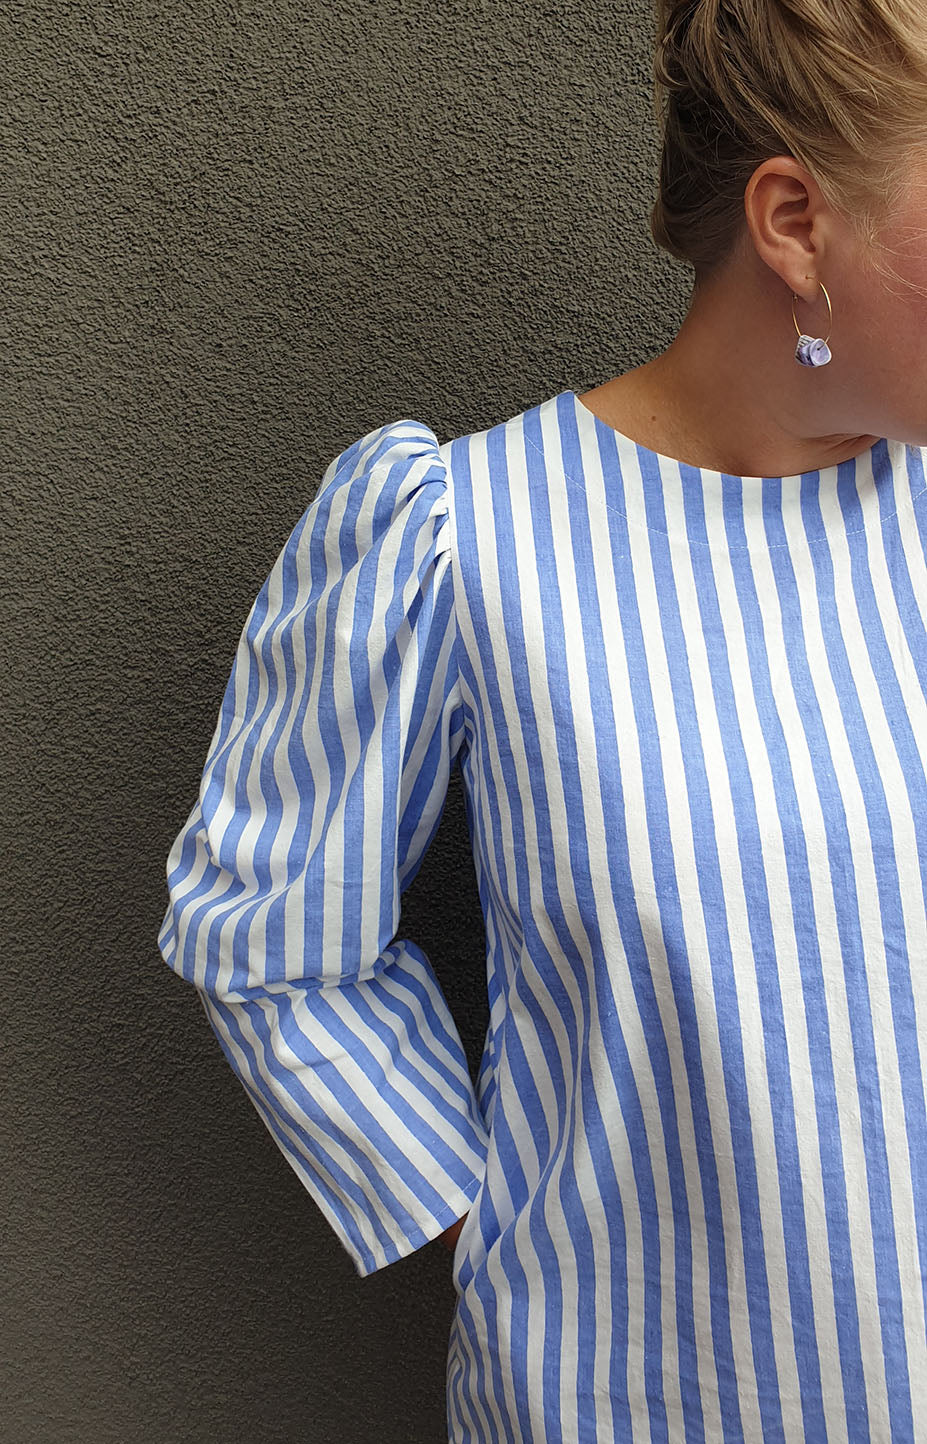 Long-sleeved dress in blue striped recycled cotton Rå Wear